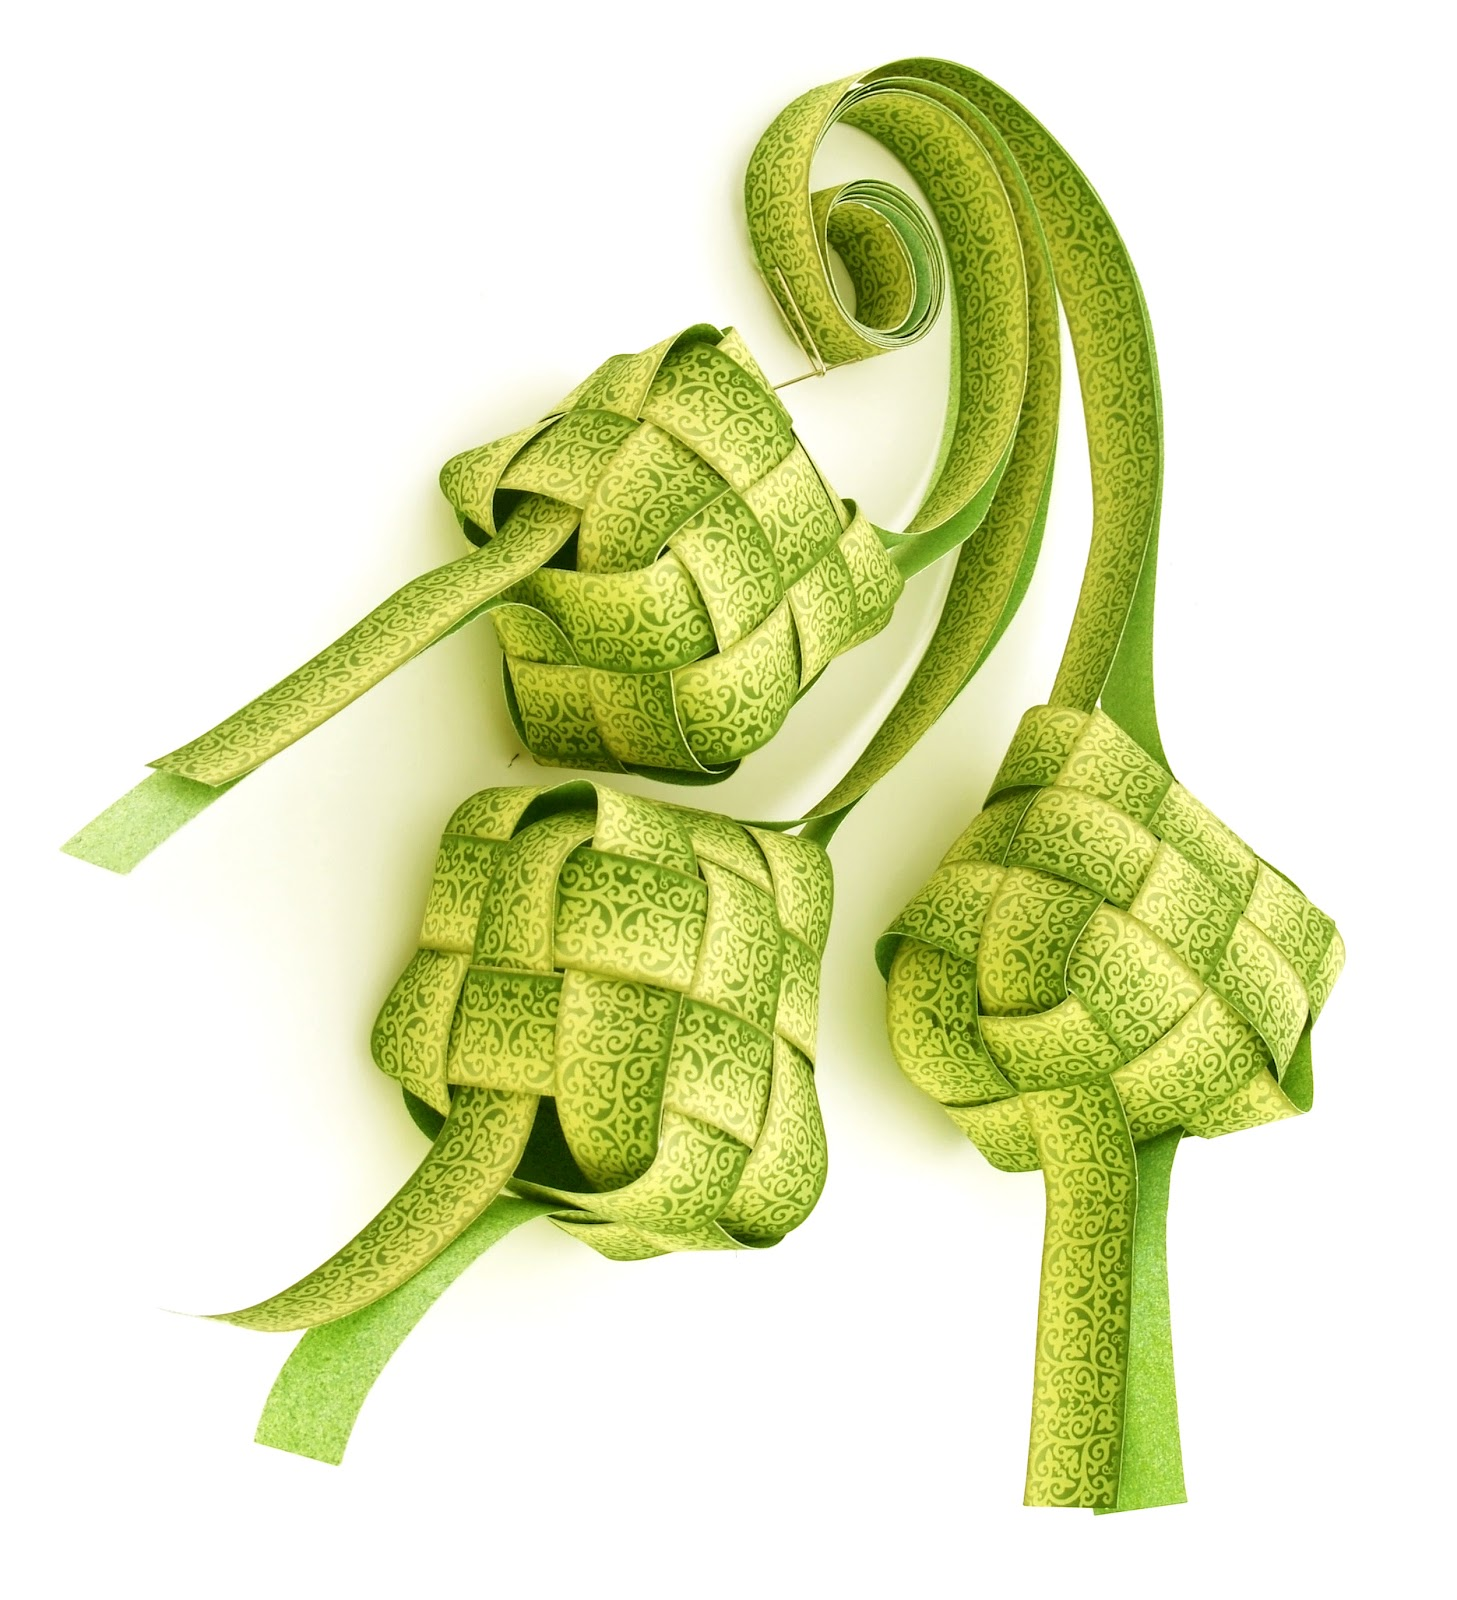 New Ketupat Images for Hari Raya